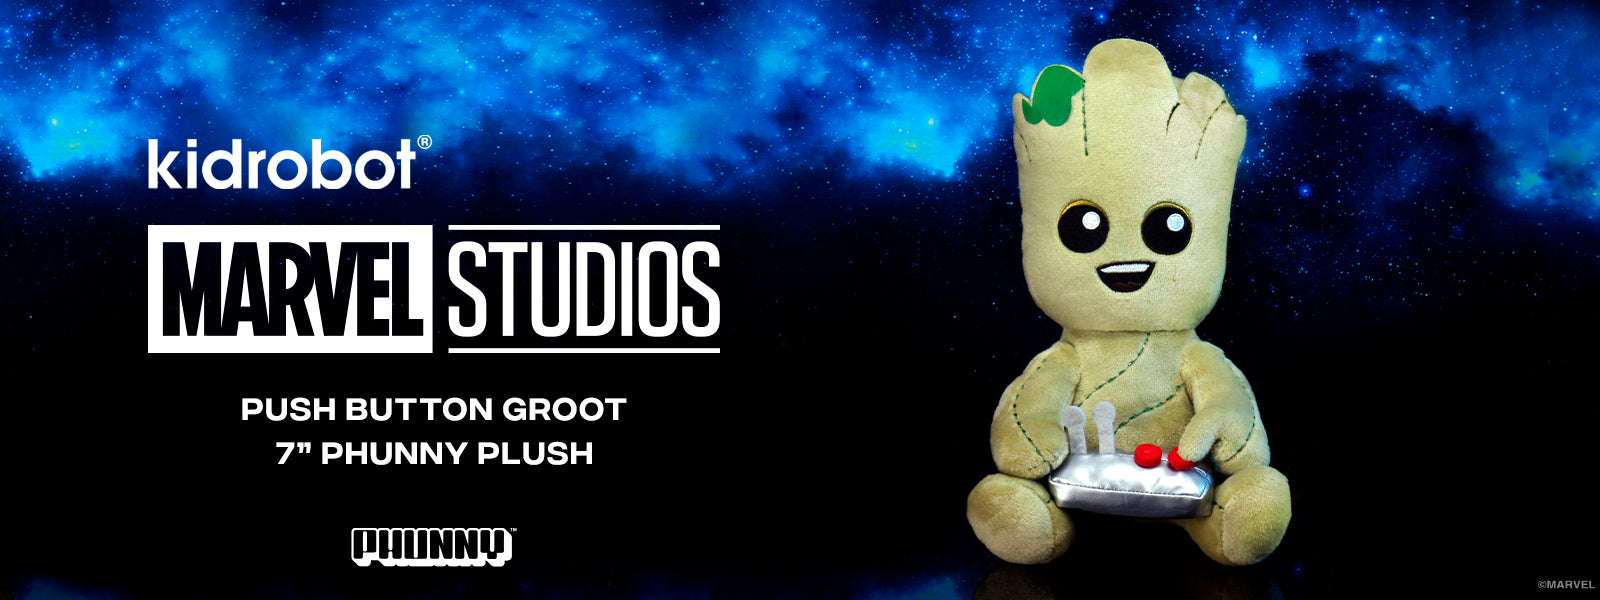 Kidrobot x Marvel Guardians of the Galaxy Plush